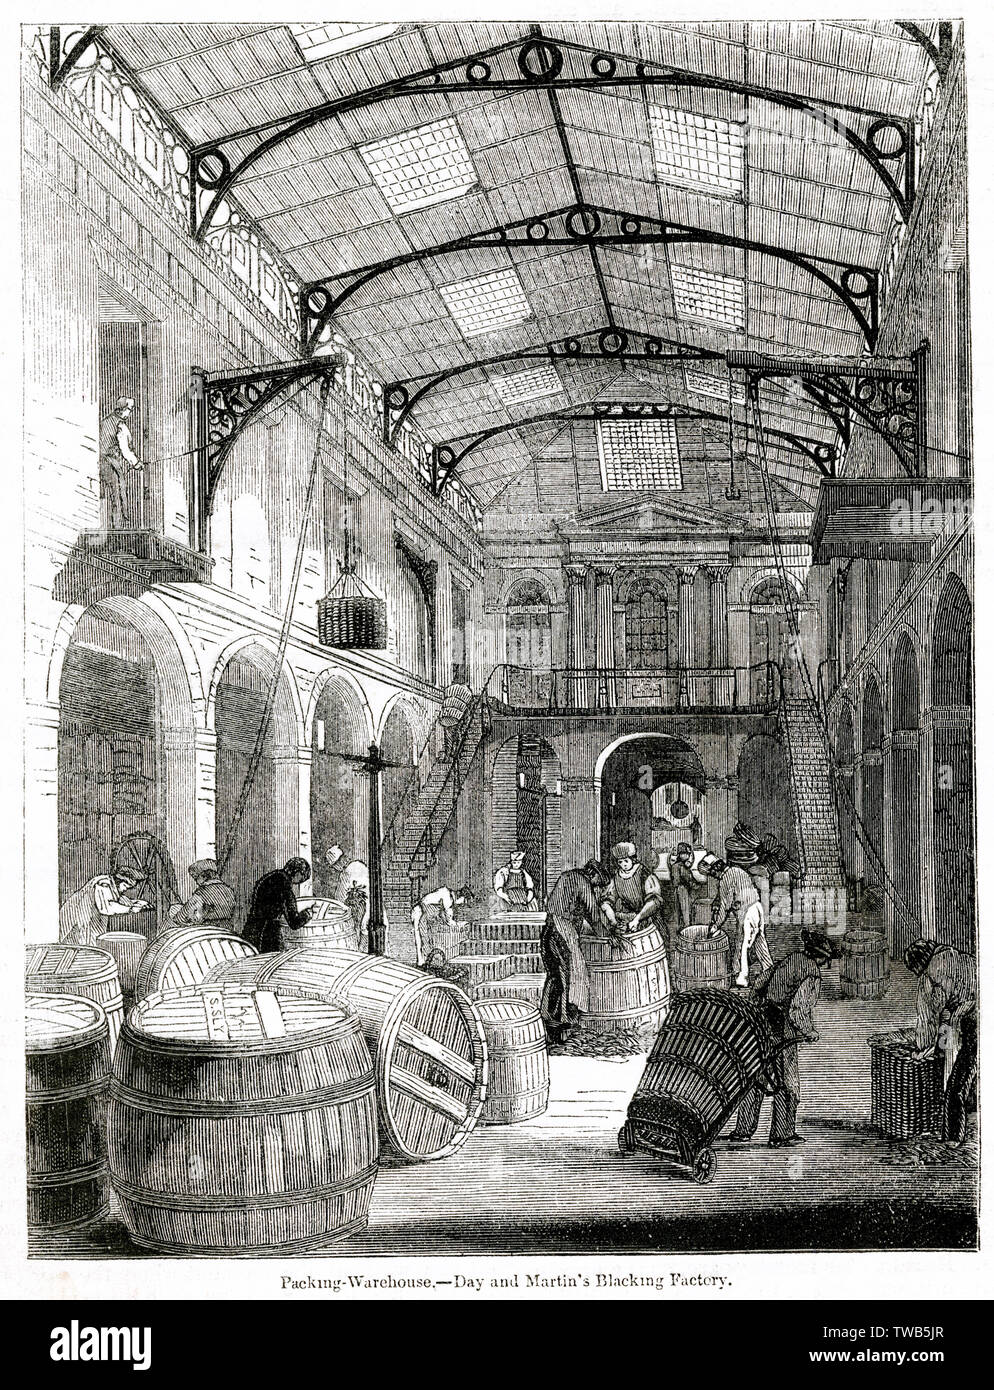 Scene inside the packing warehouse of the Day and Martin blacking factory, Holborn, London.      Date: 1842 - Stock Image